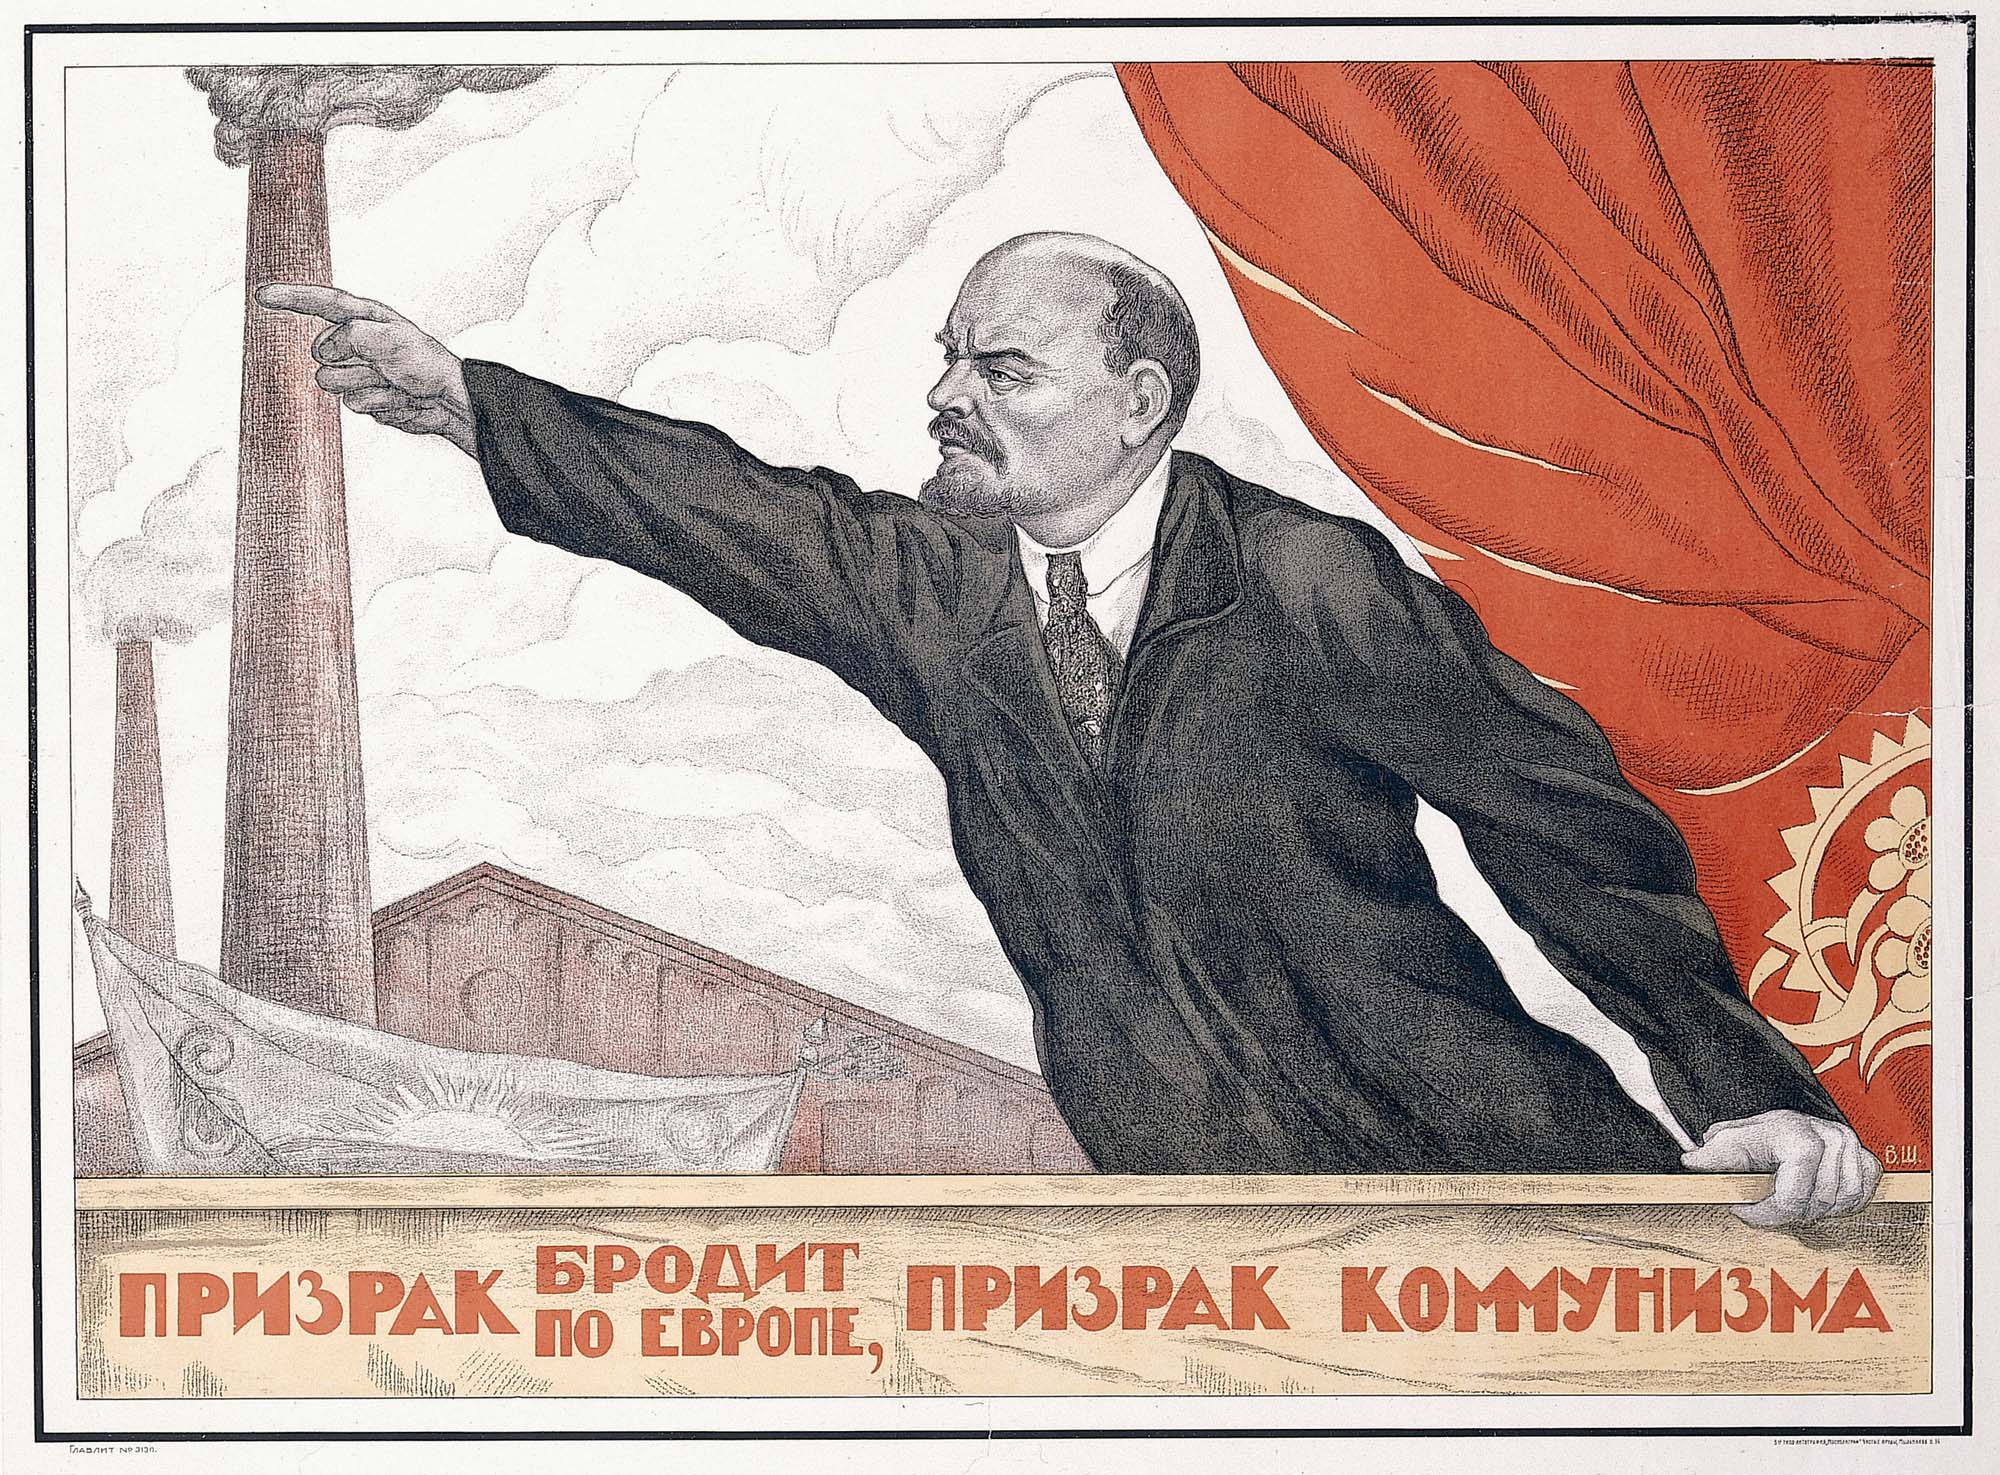 a pposter with Lenin in the classic leaning forward speech making mode